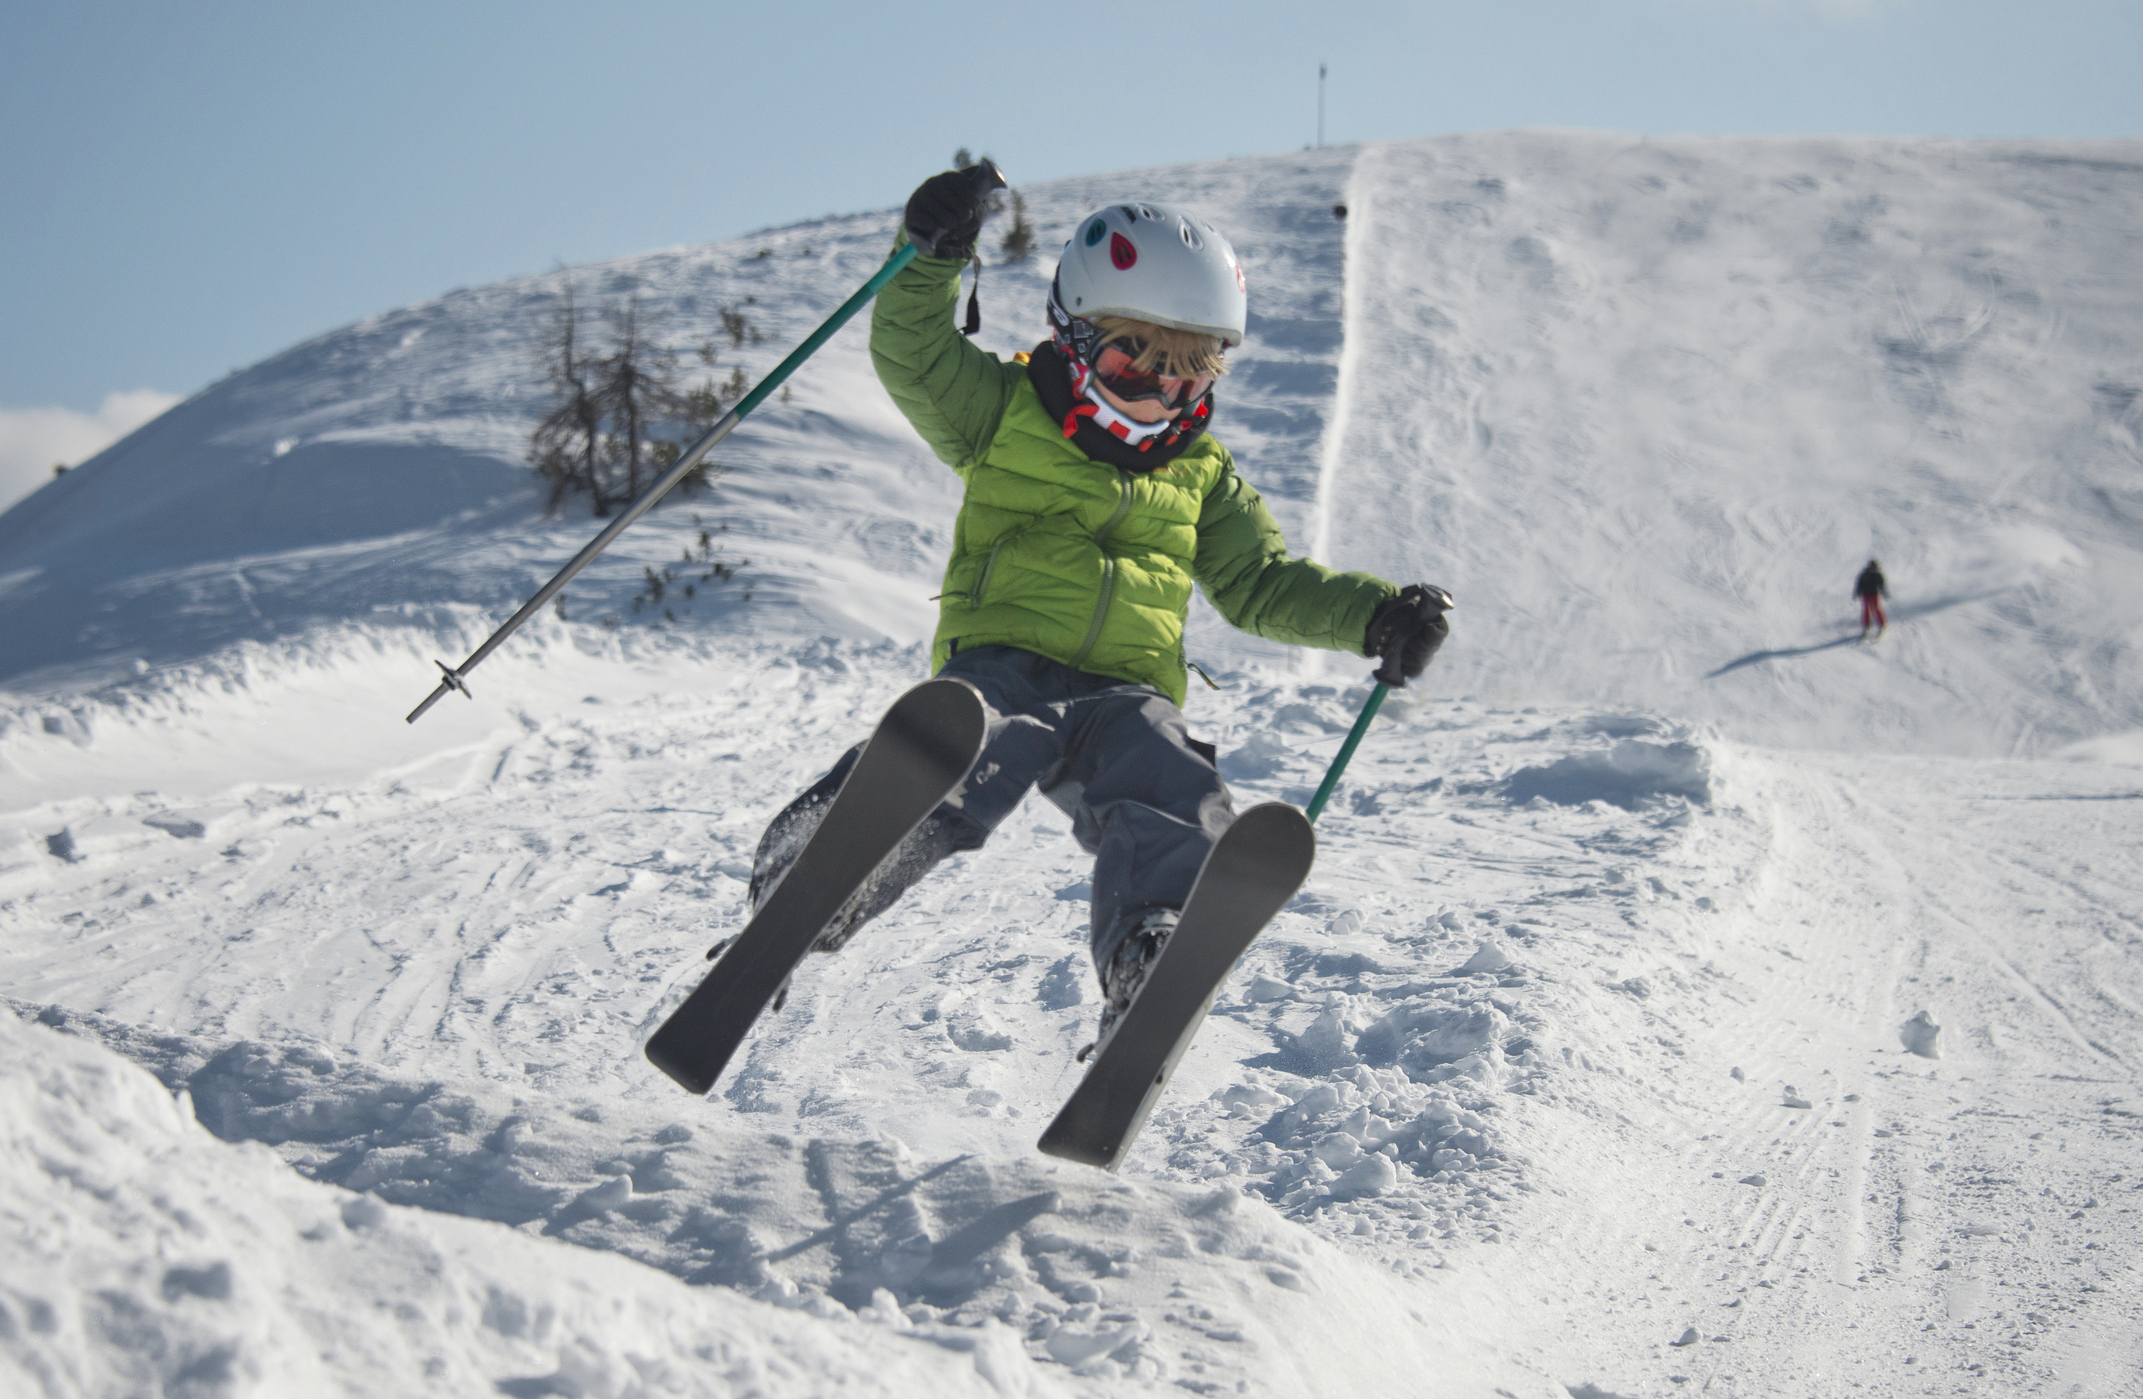 Cours particuliers ski & snowboard à partir de 6 ans/ Private ski lessons from 6 years old